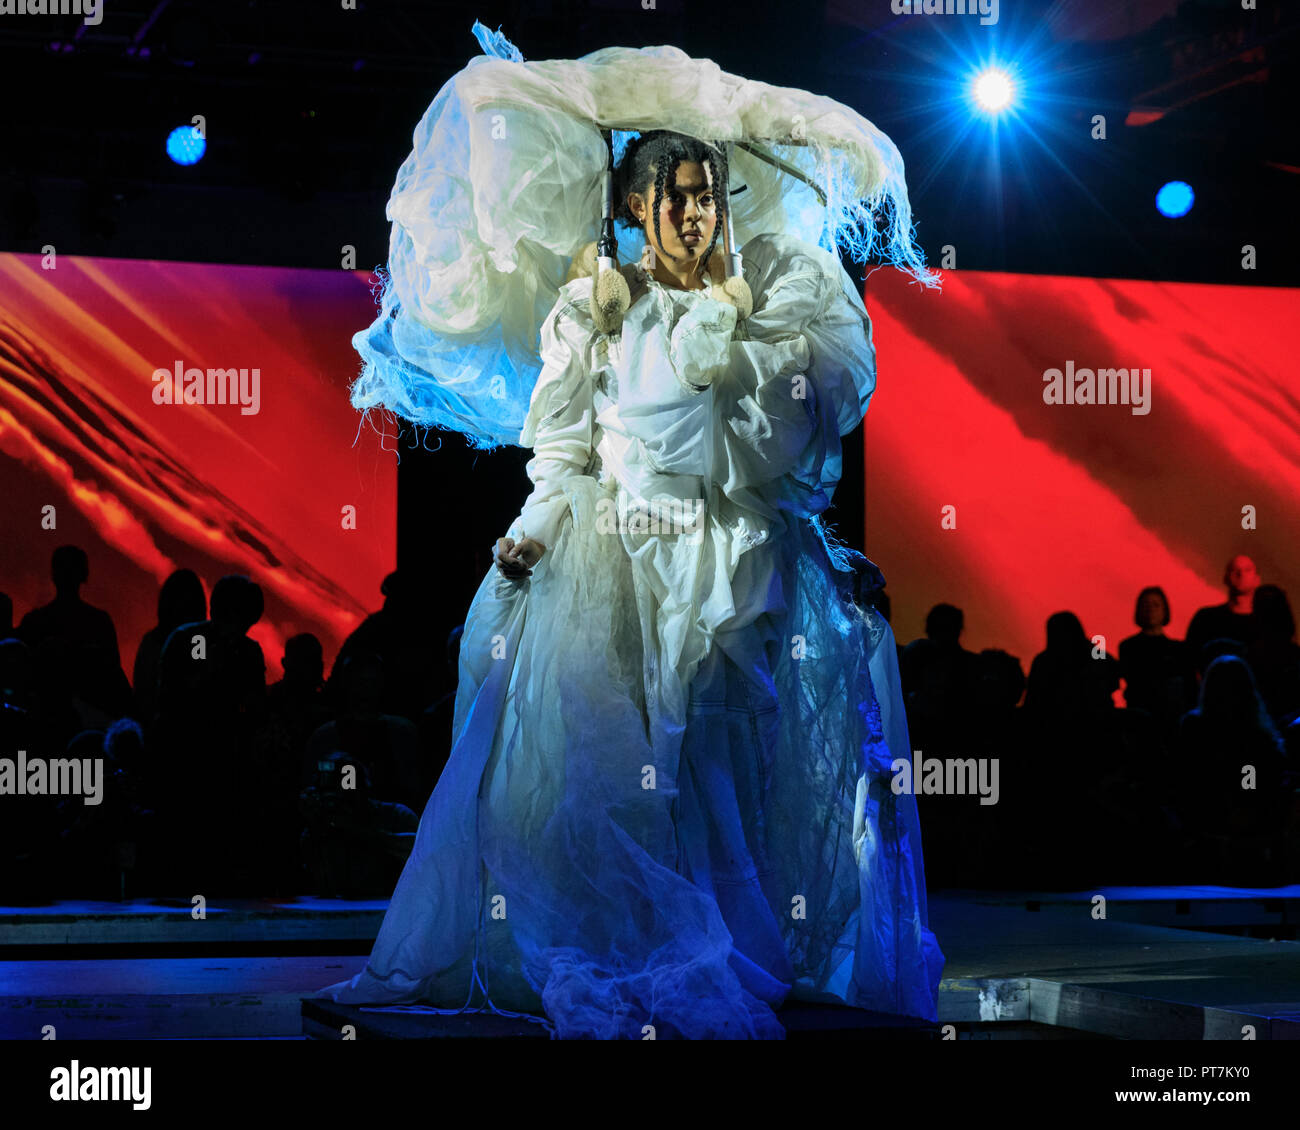 Southbank Centre London 7th Oct 2018 Academy Award Winning Designer Tim Yip Crouching Tiger Hidden Dragon Presents 25 Spectacular Costumes In A Performance Inspired By Global Diversity And Climate Change Cloud Is